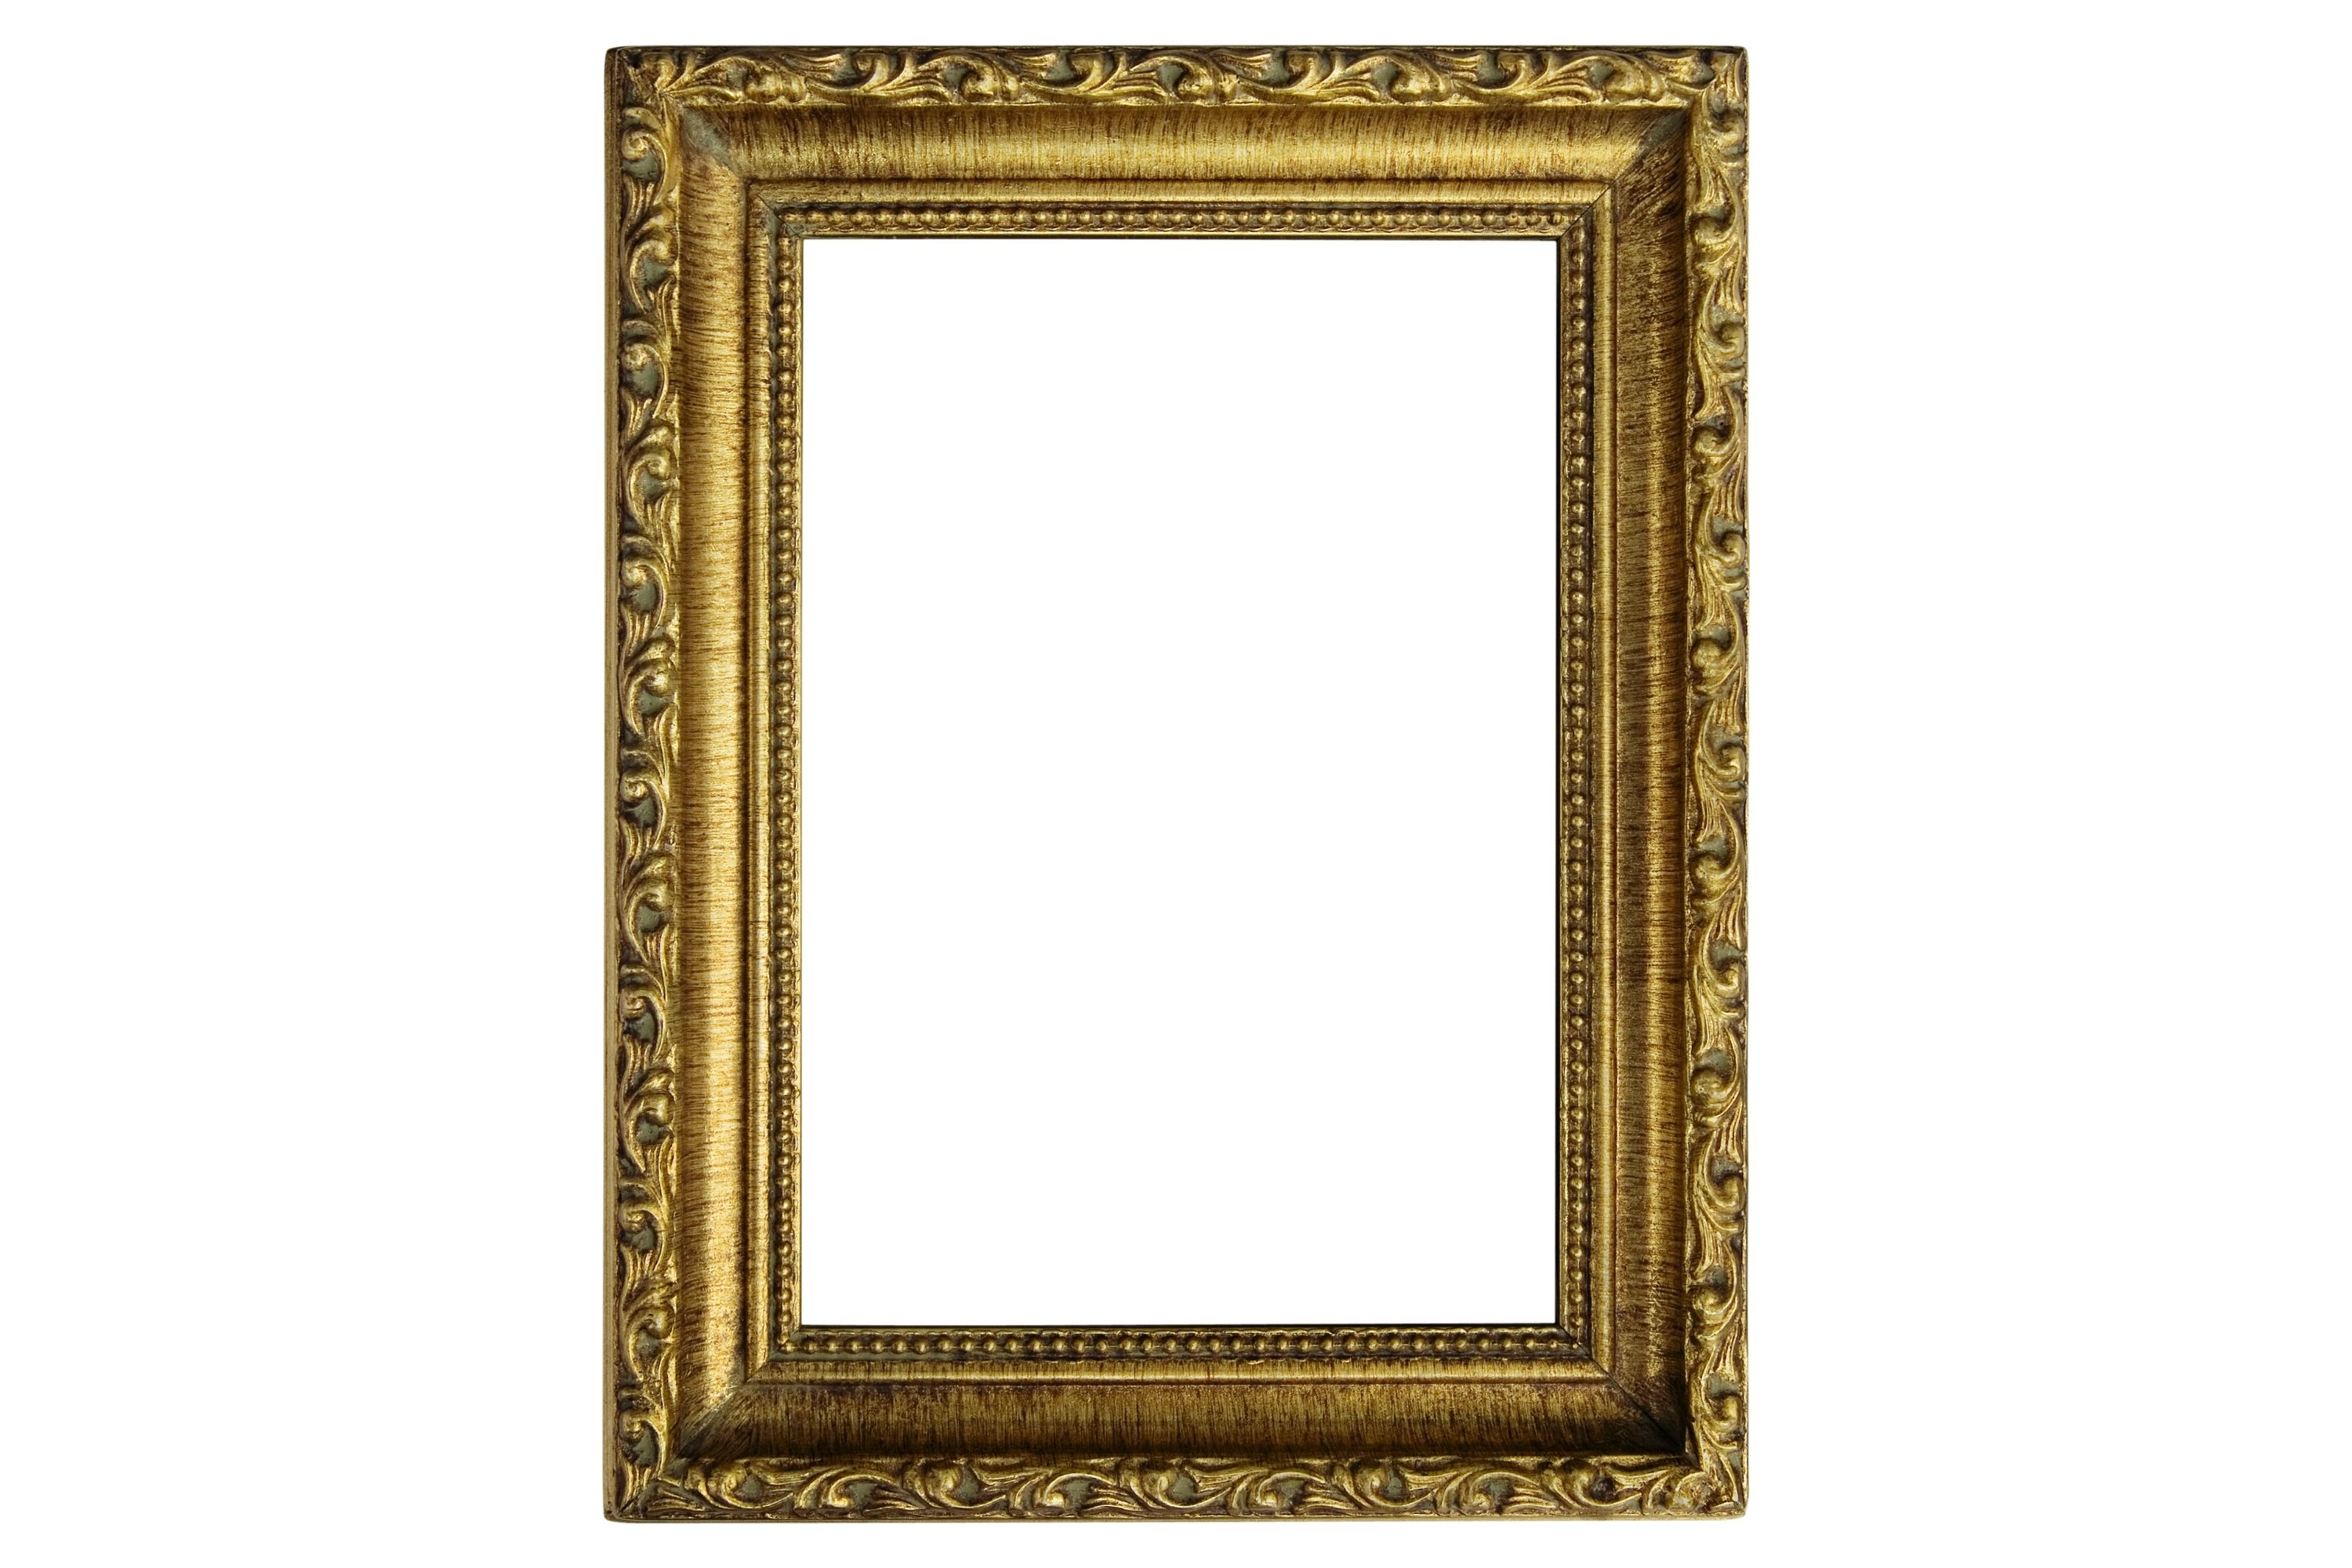 20 Genius Christmas Gifts Ideas to Surprise Your Family and Friends frames